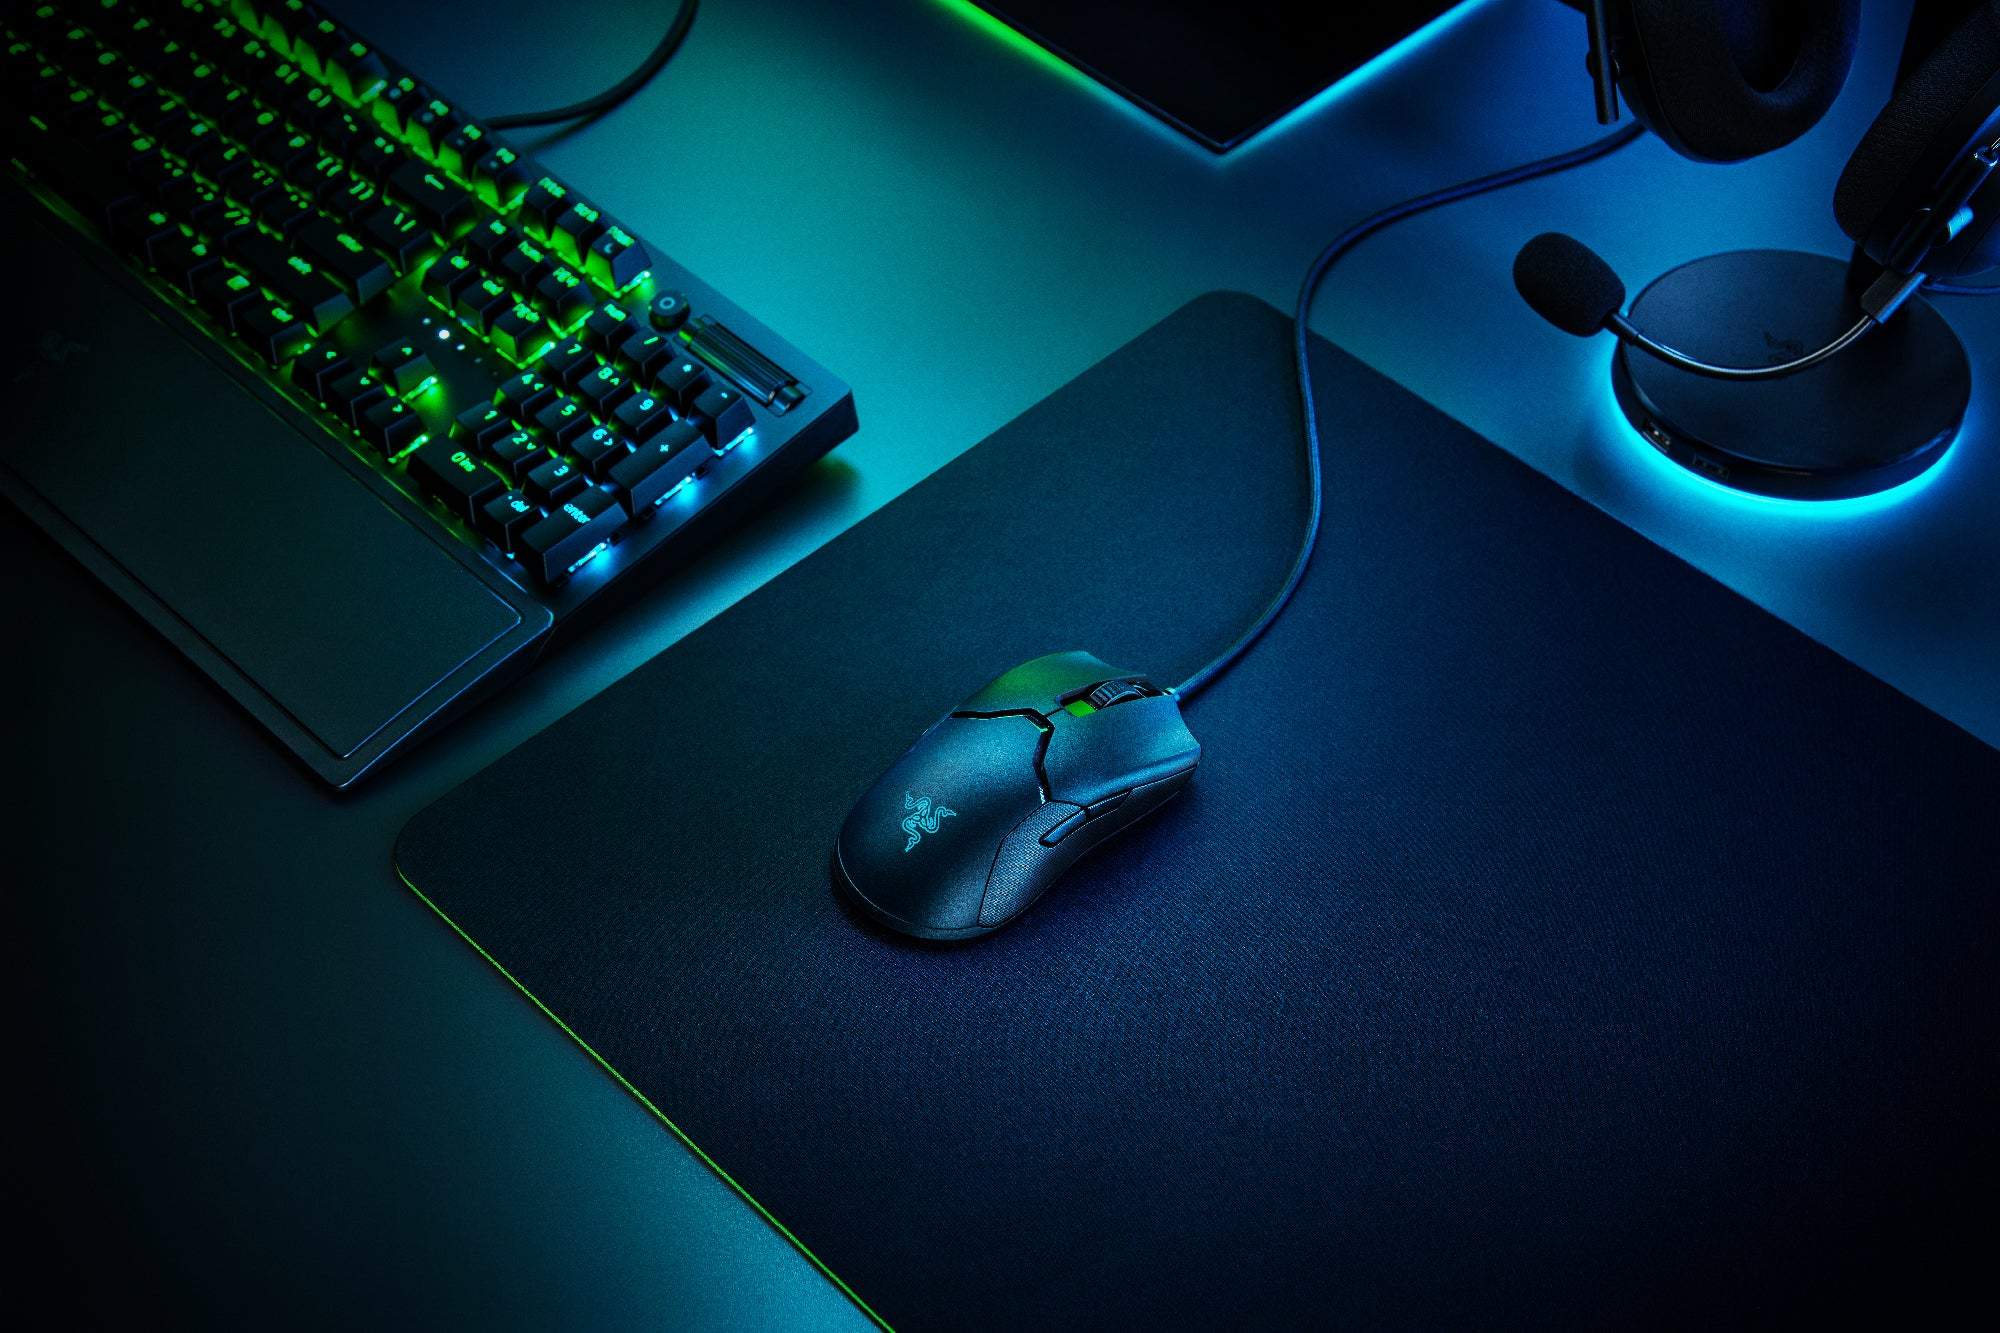 Razer Viper 8K gaming mouse on a desk with a PC.